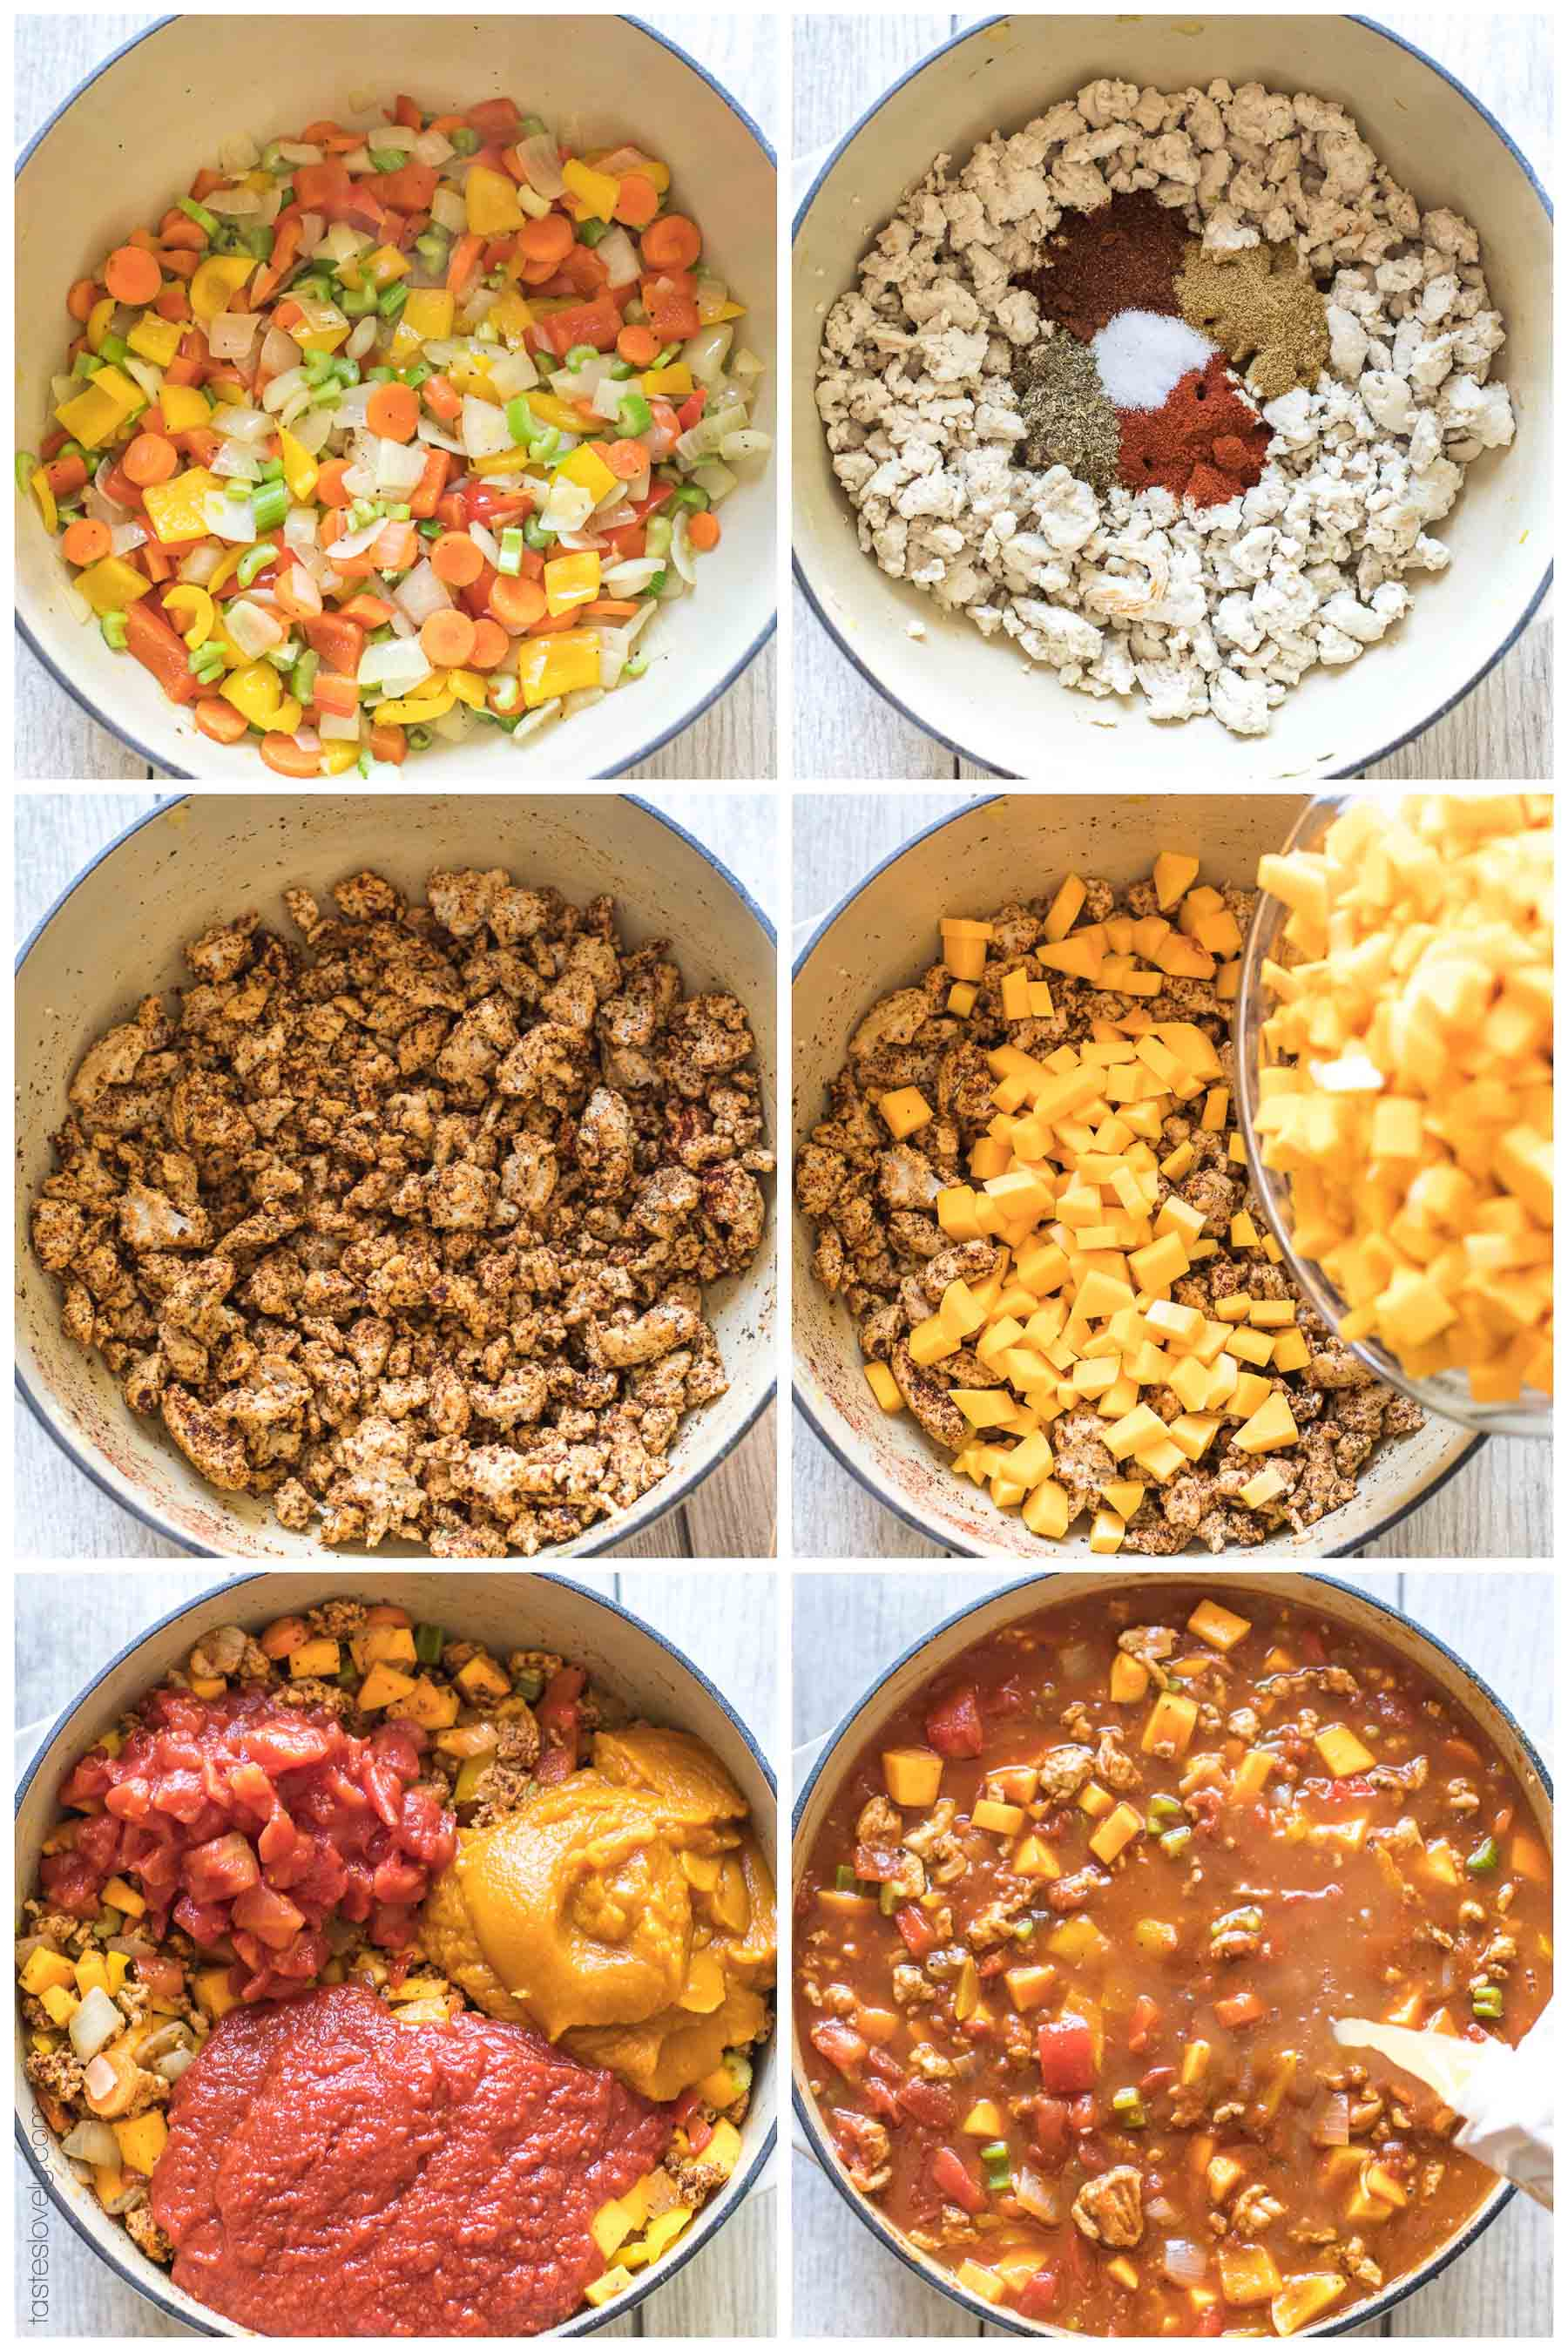 Paleo & Whole30 Pumpkin Turkey Chili Recipe - a no bean chili recipe you can make on the stovetop or in your slow cooker! Dairy free, gluten free, sugar free, clean eating.